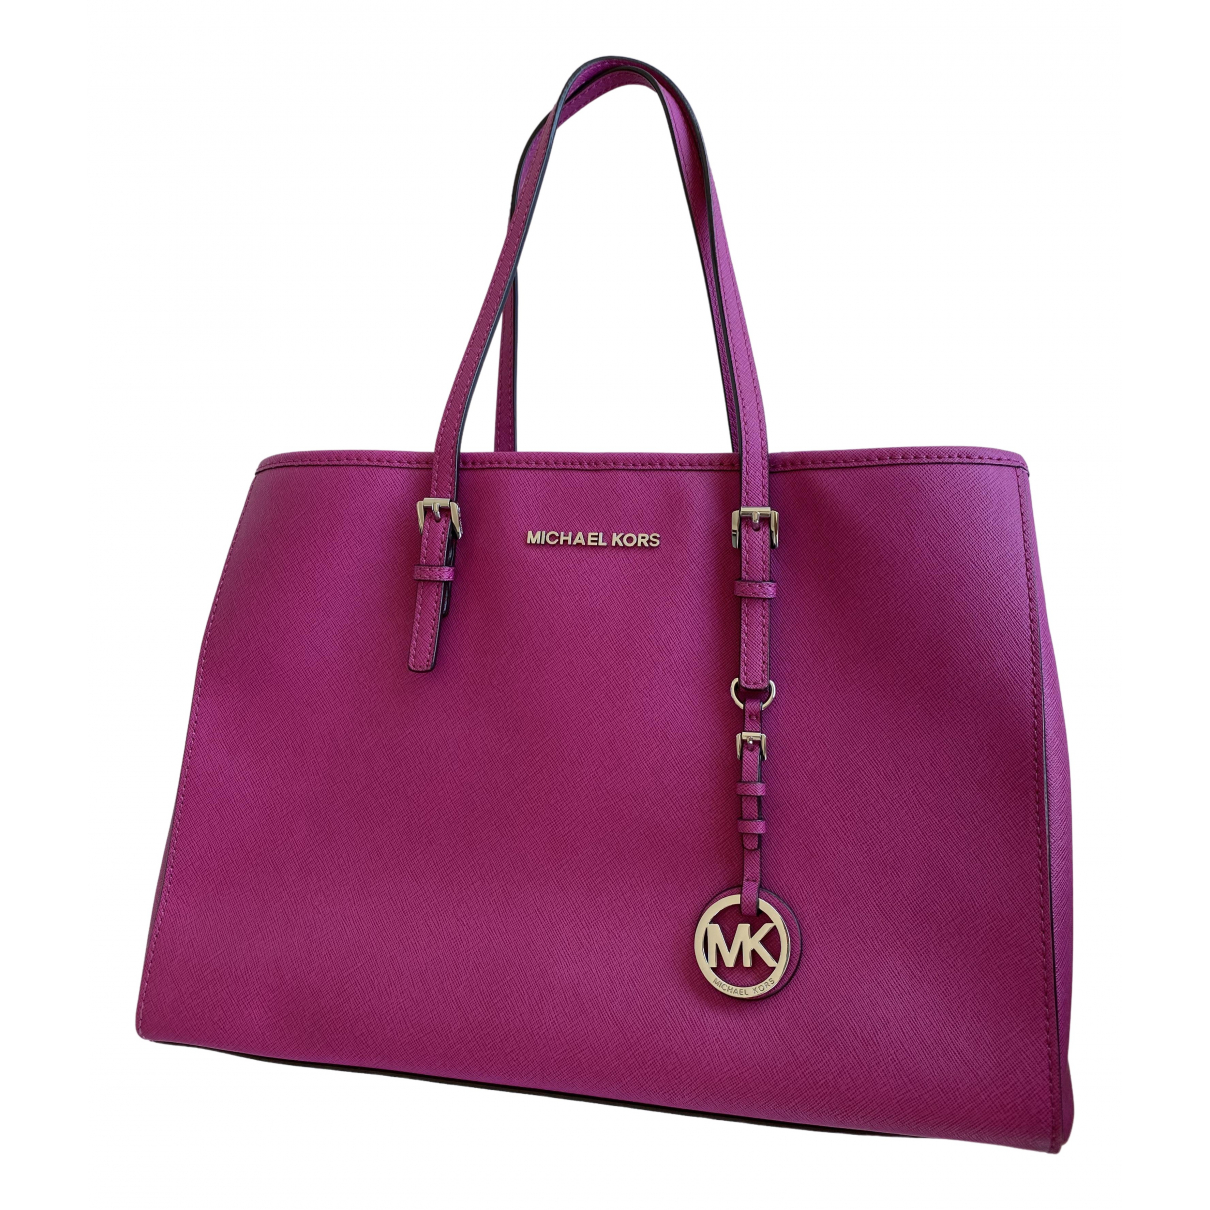 Michael Kors Jet Set Pink Leather handbag for Women \N